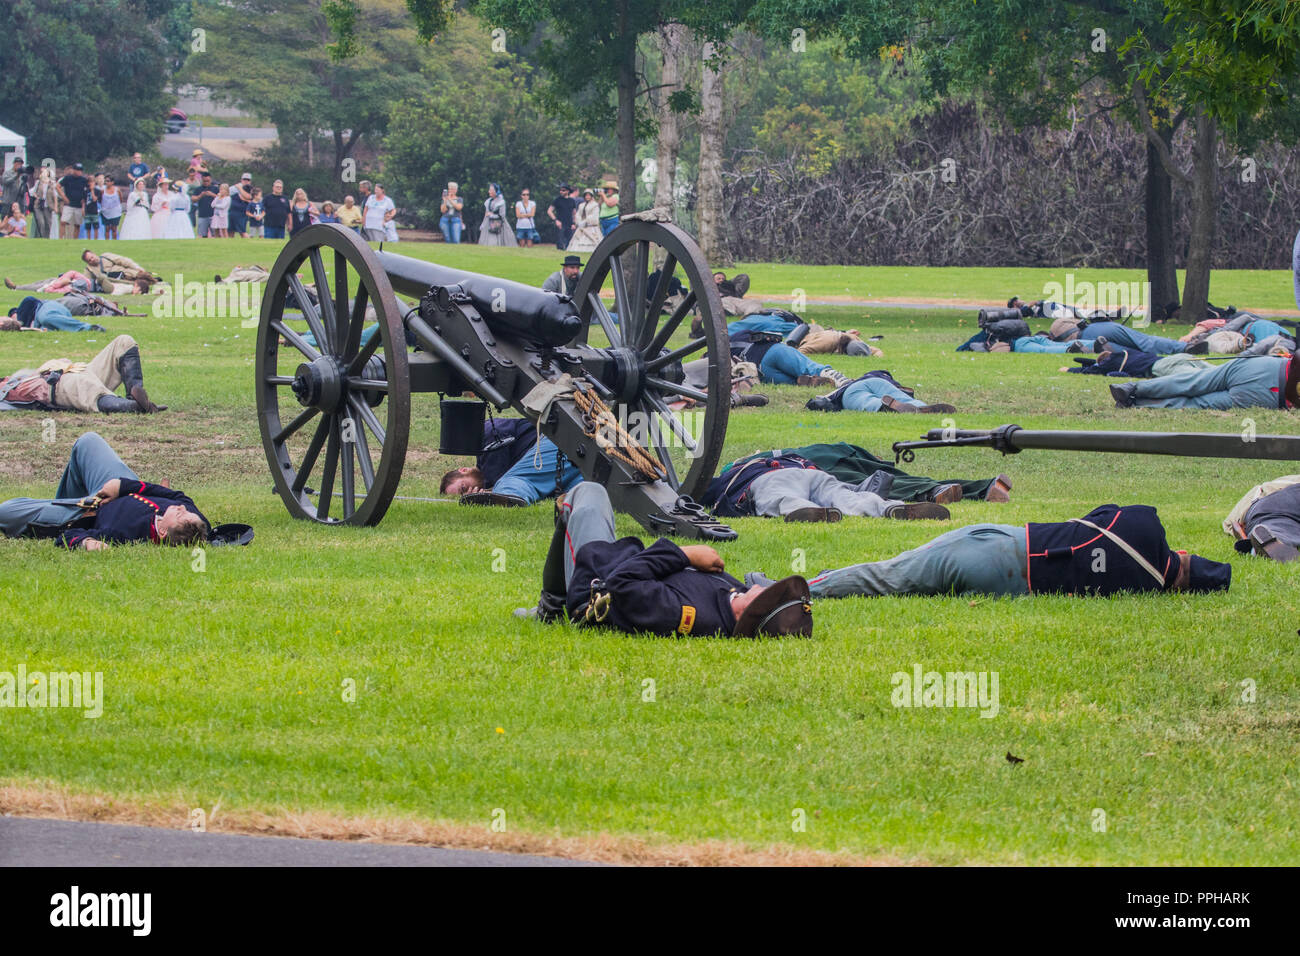 battlefield Casualties laying on the ground  beside a canon during a American Civil war reenactment in Central Park Huntington Beach, California, USA - Stock Image